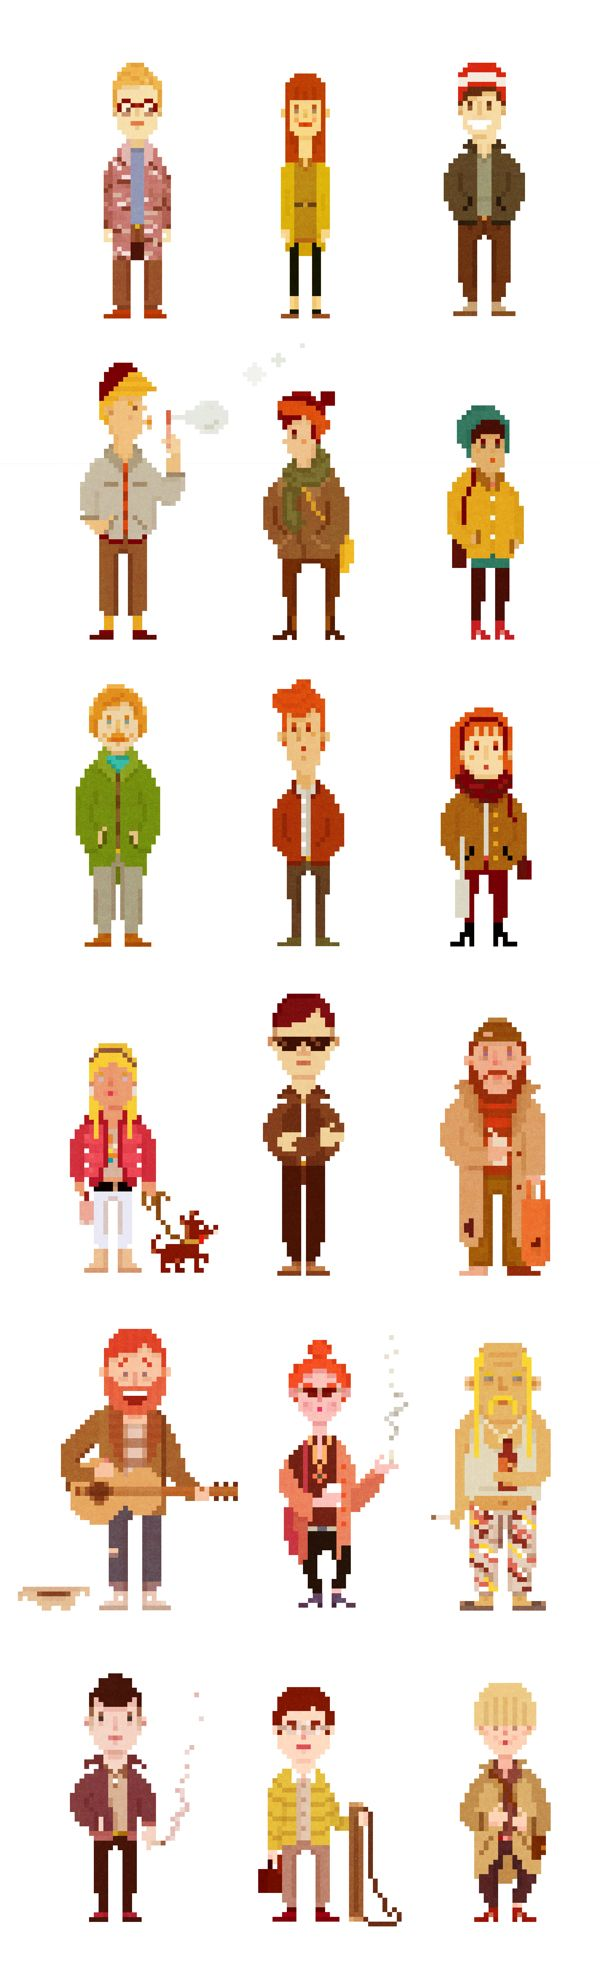 Pixel Based Characters. Could be incorporated into my animation and combine them with the pixel bands.